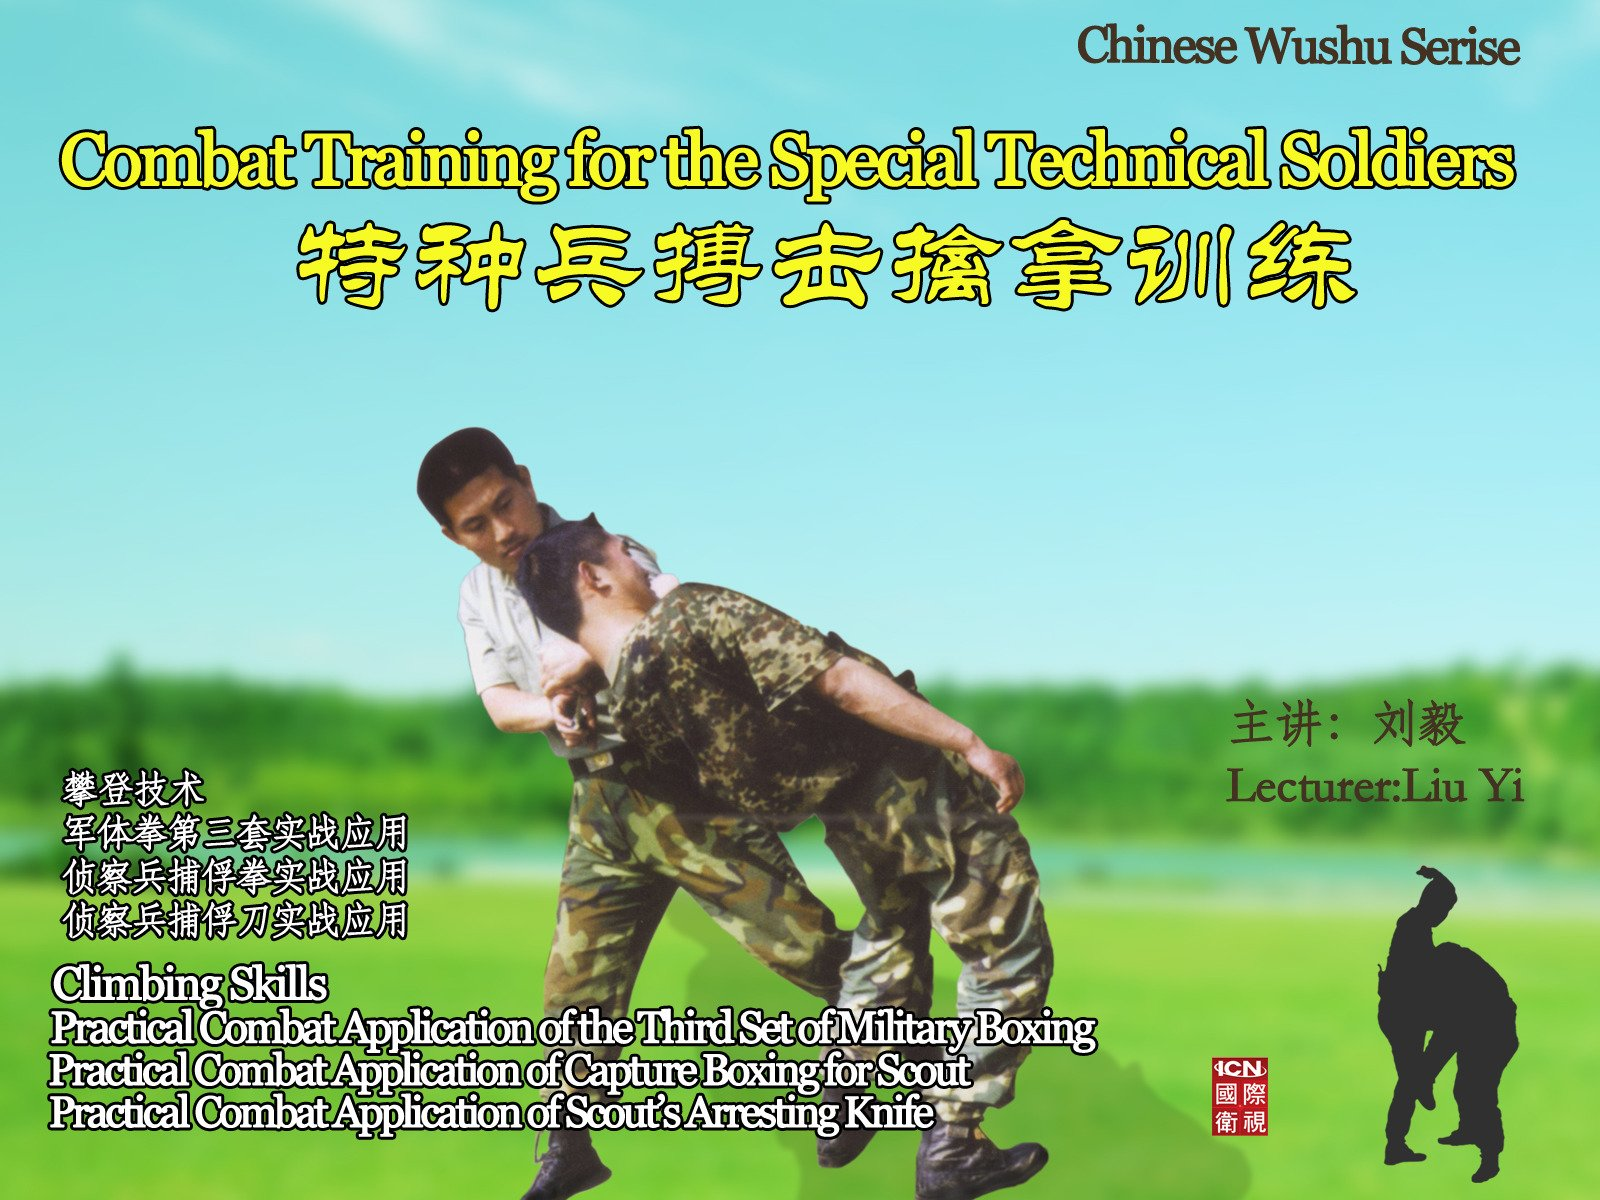 Combat Training for the Special Technical Soldiers - Season 4